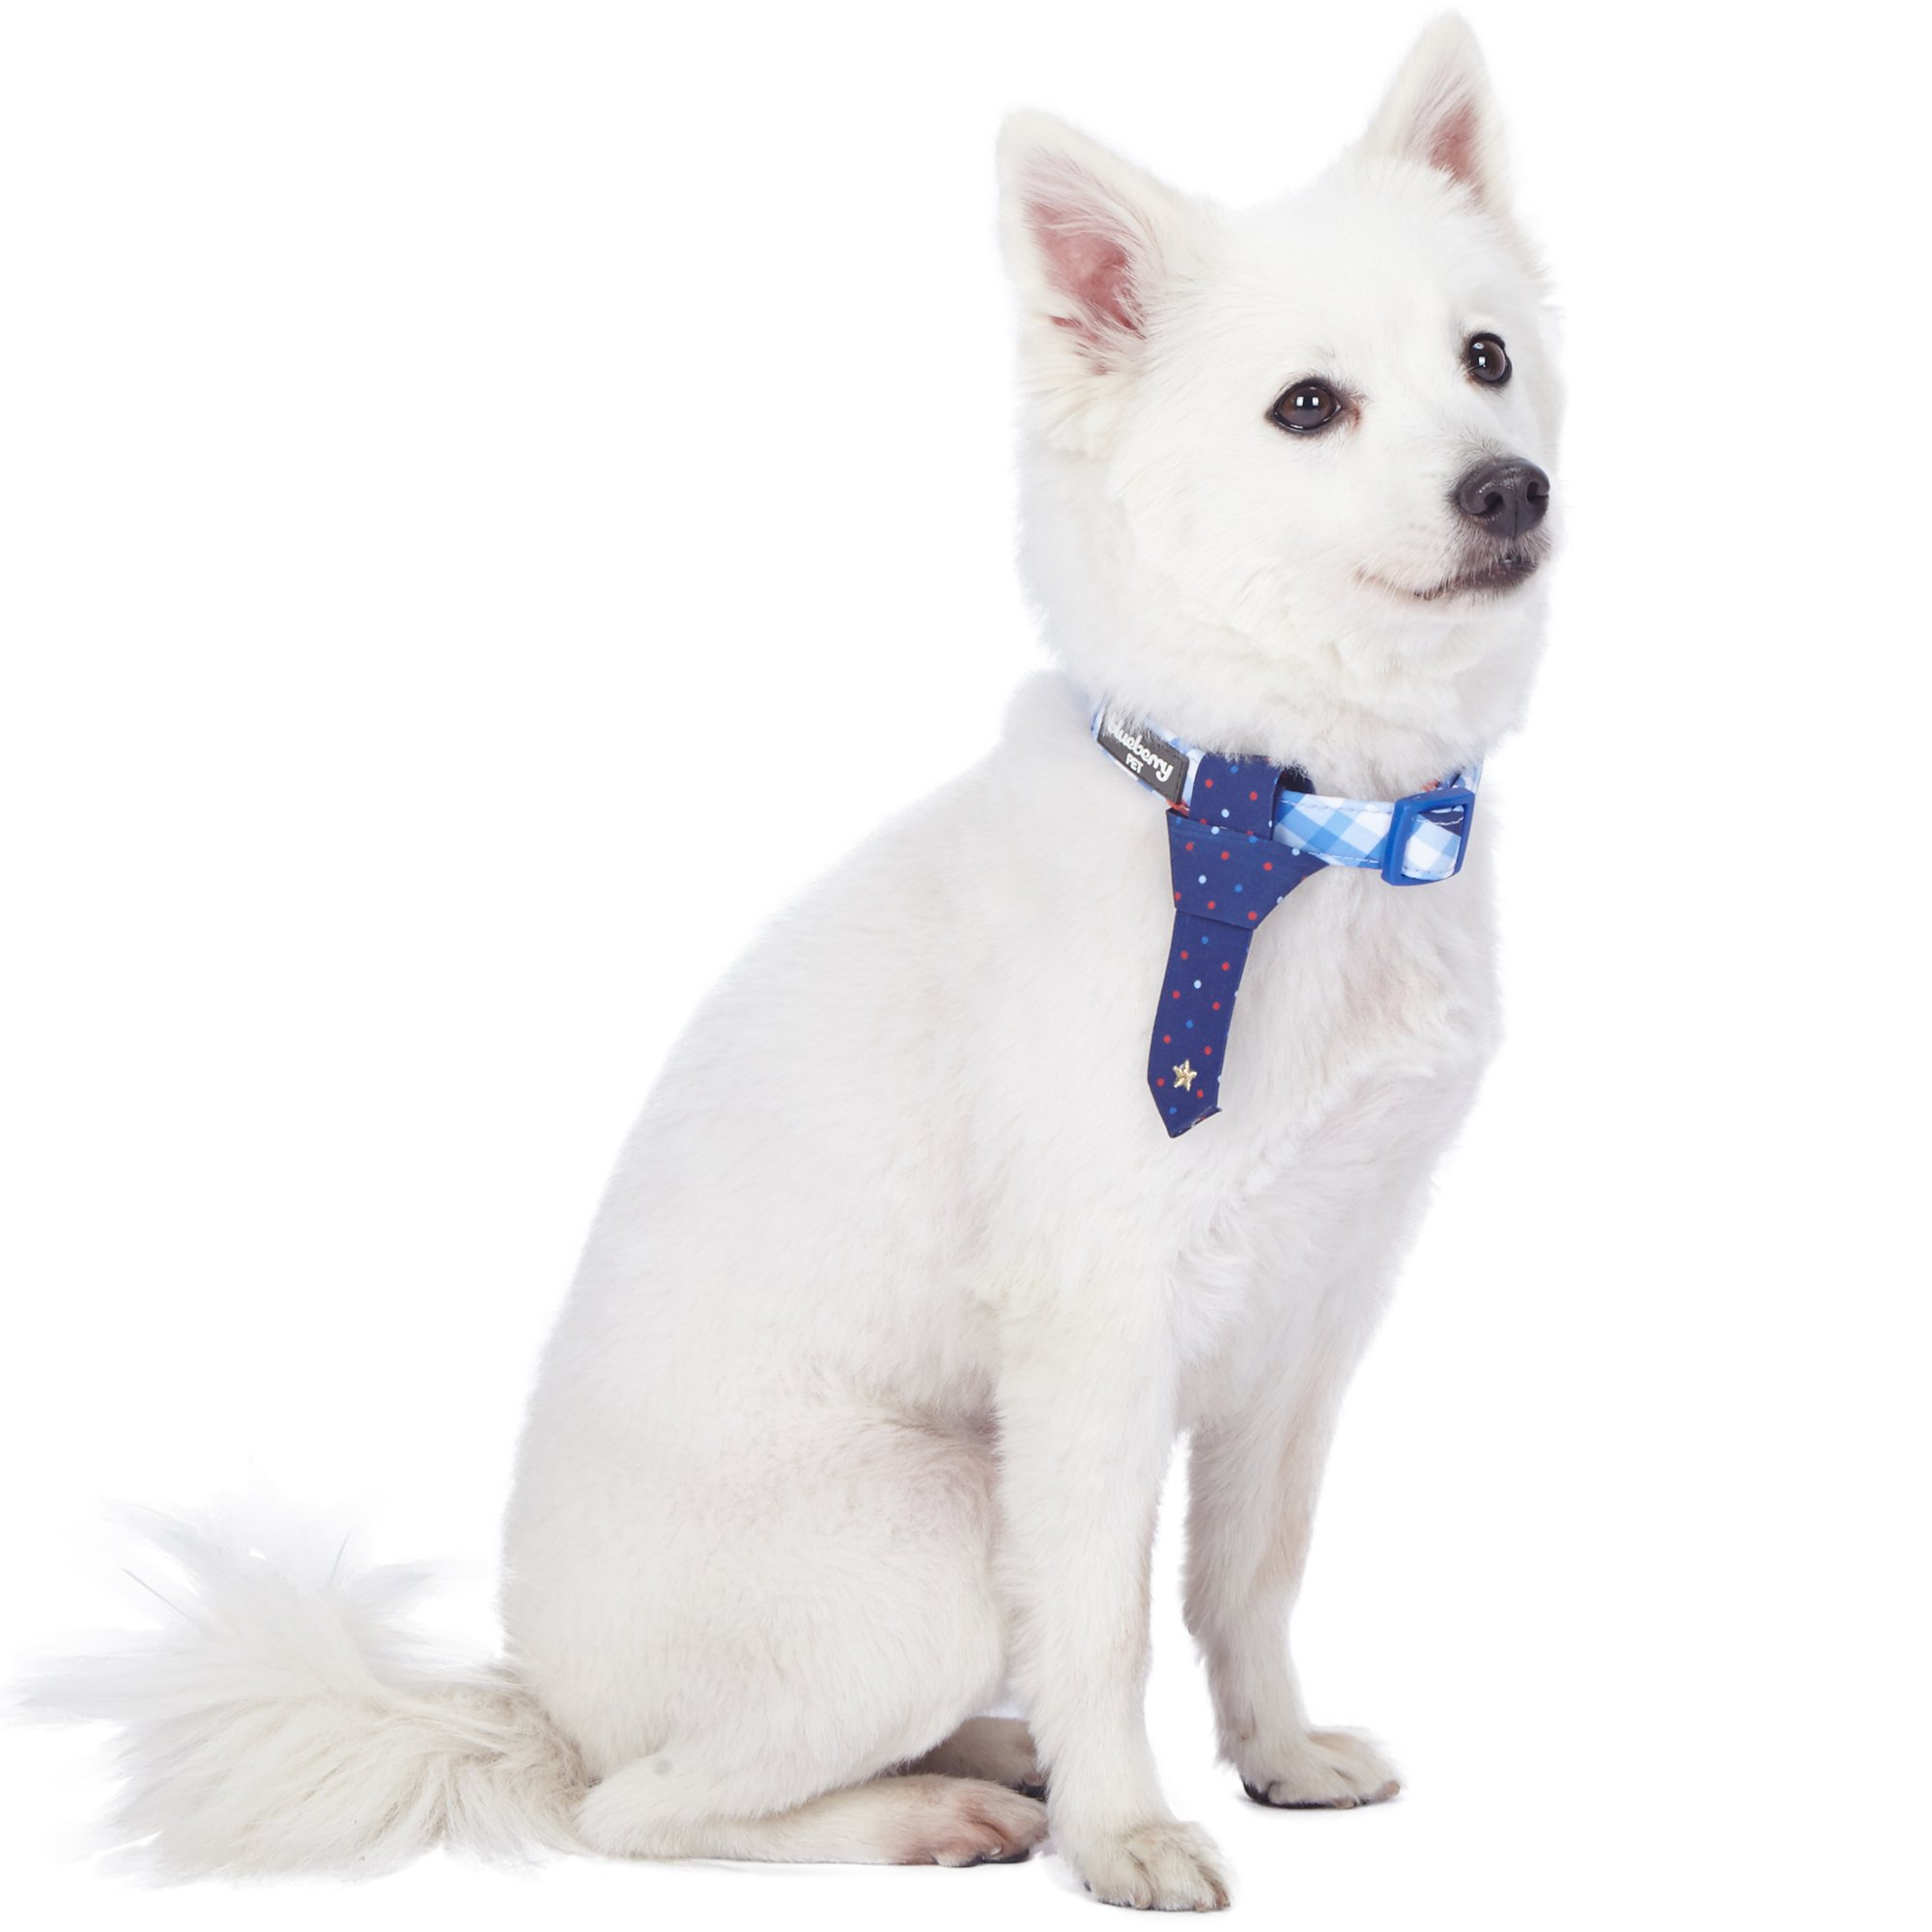 Blueberry Pet 4 Patterns Blue Hue Scottish Plaid Style Tie Dog Collar, Small, Neck 12''-16'', Adjustable Collars for Dogs